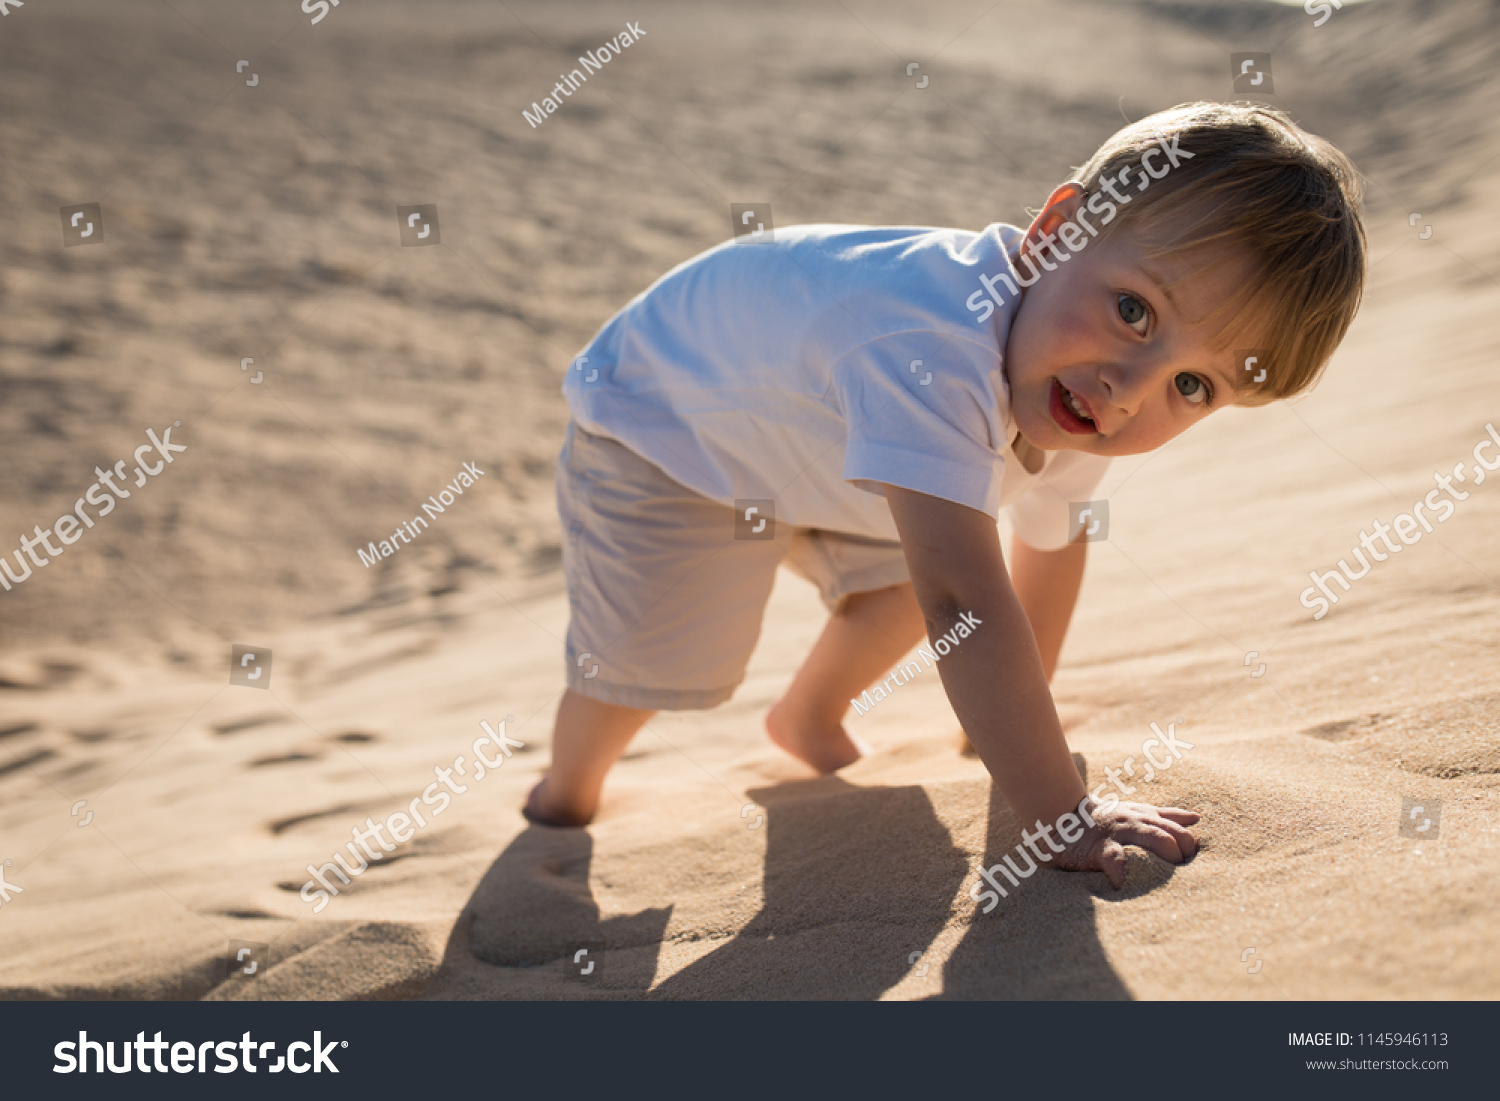 Little handsome courageous baby boy climbing on a sand dune.